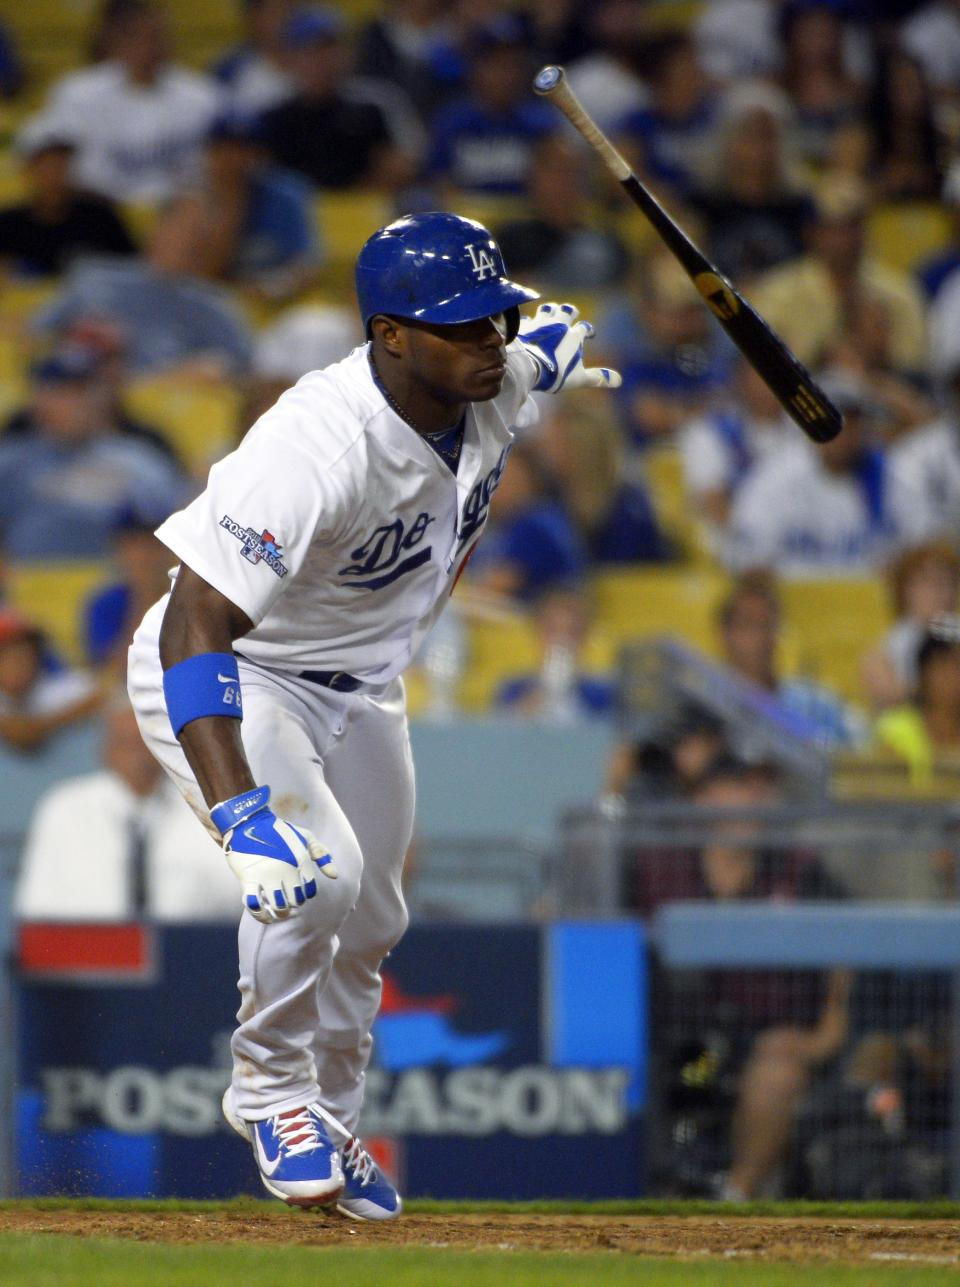 Los Angeles Dodgers' Yasiel Puig tosses his bat after he hit a RBI single against the Atlanta Braves in the eighth inning of Game 3 in the National League division baseball series Sunday, Oct. 6, 2013, in Los Angeles. The Dodgers beat the Braves, 13-6. (AP Photo/Mark J. Terrill)